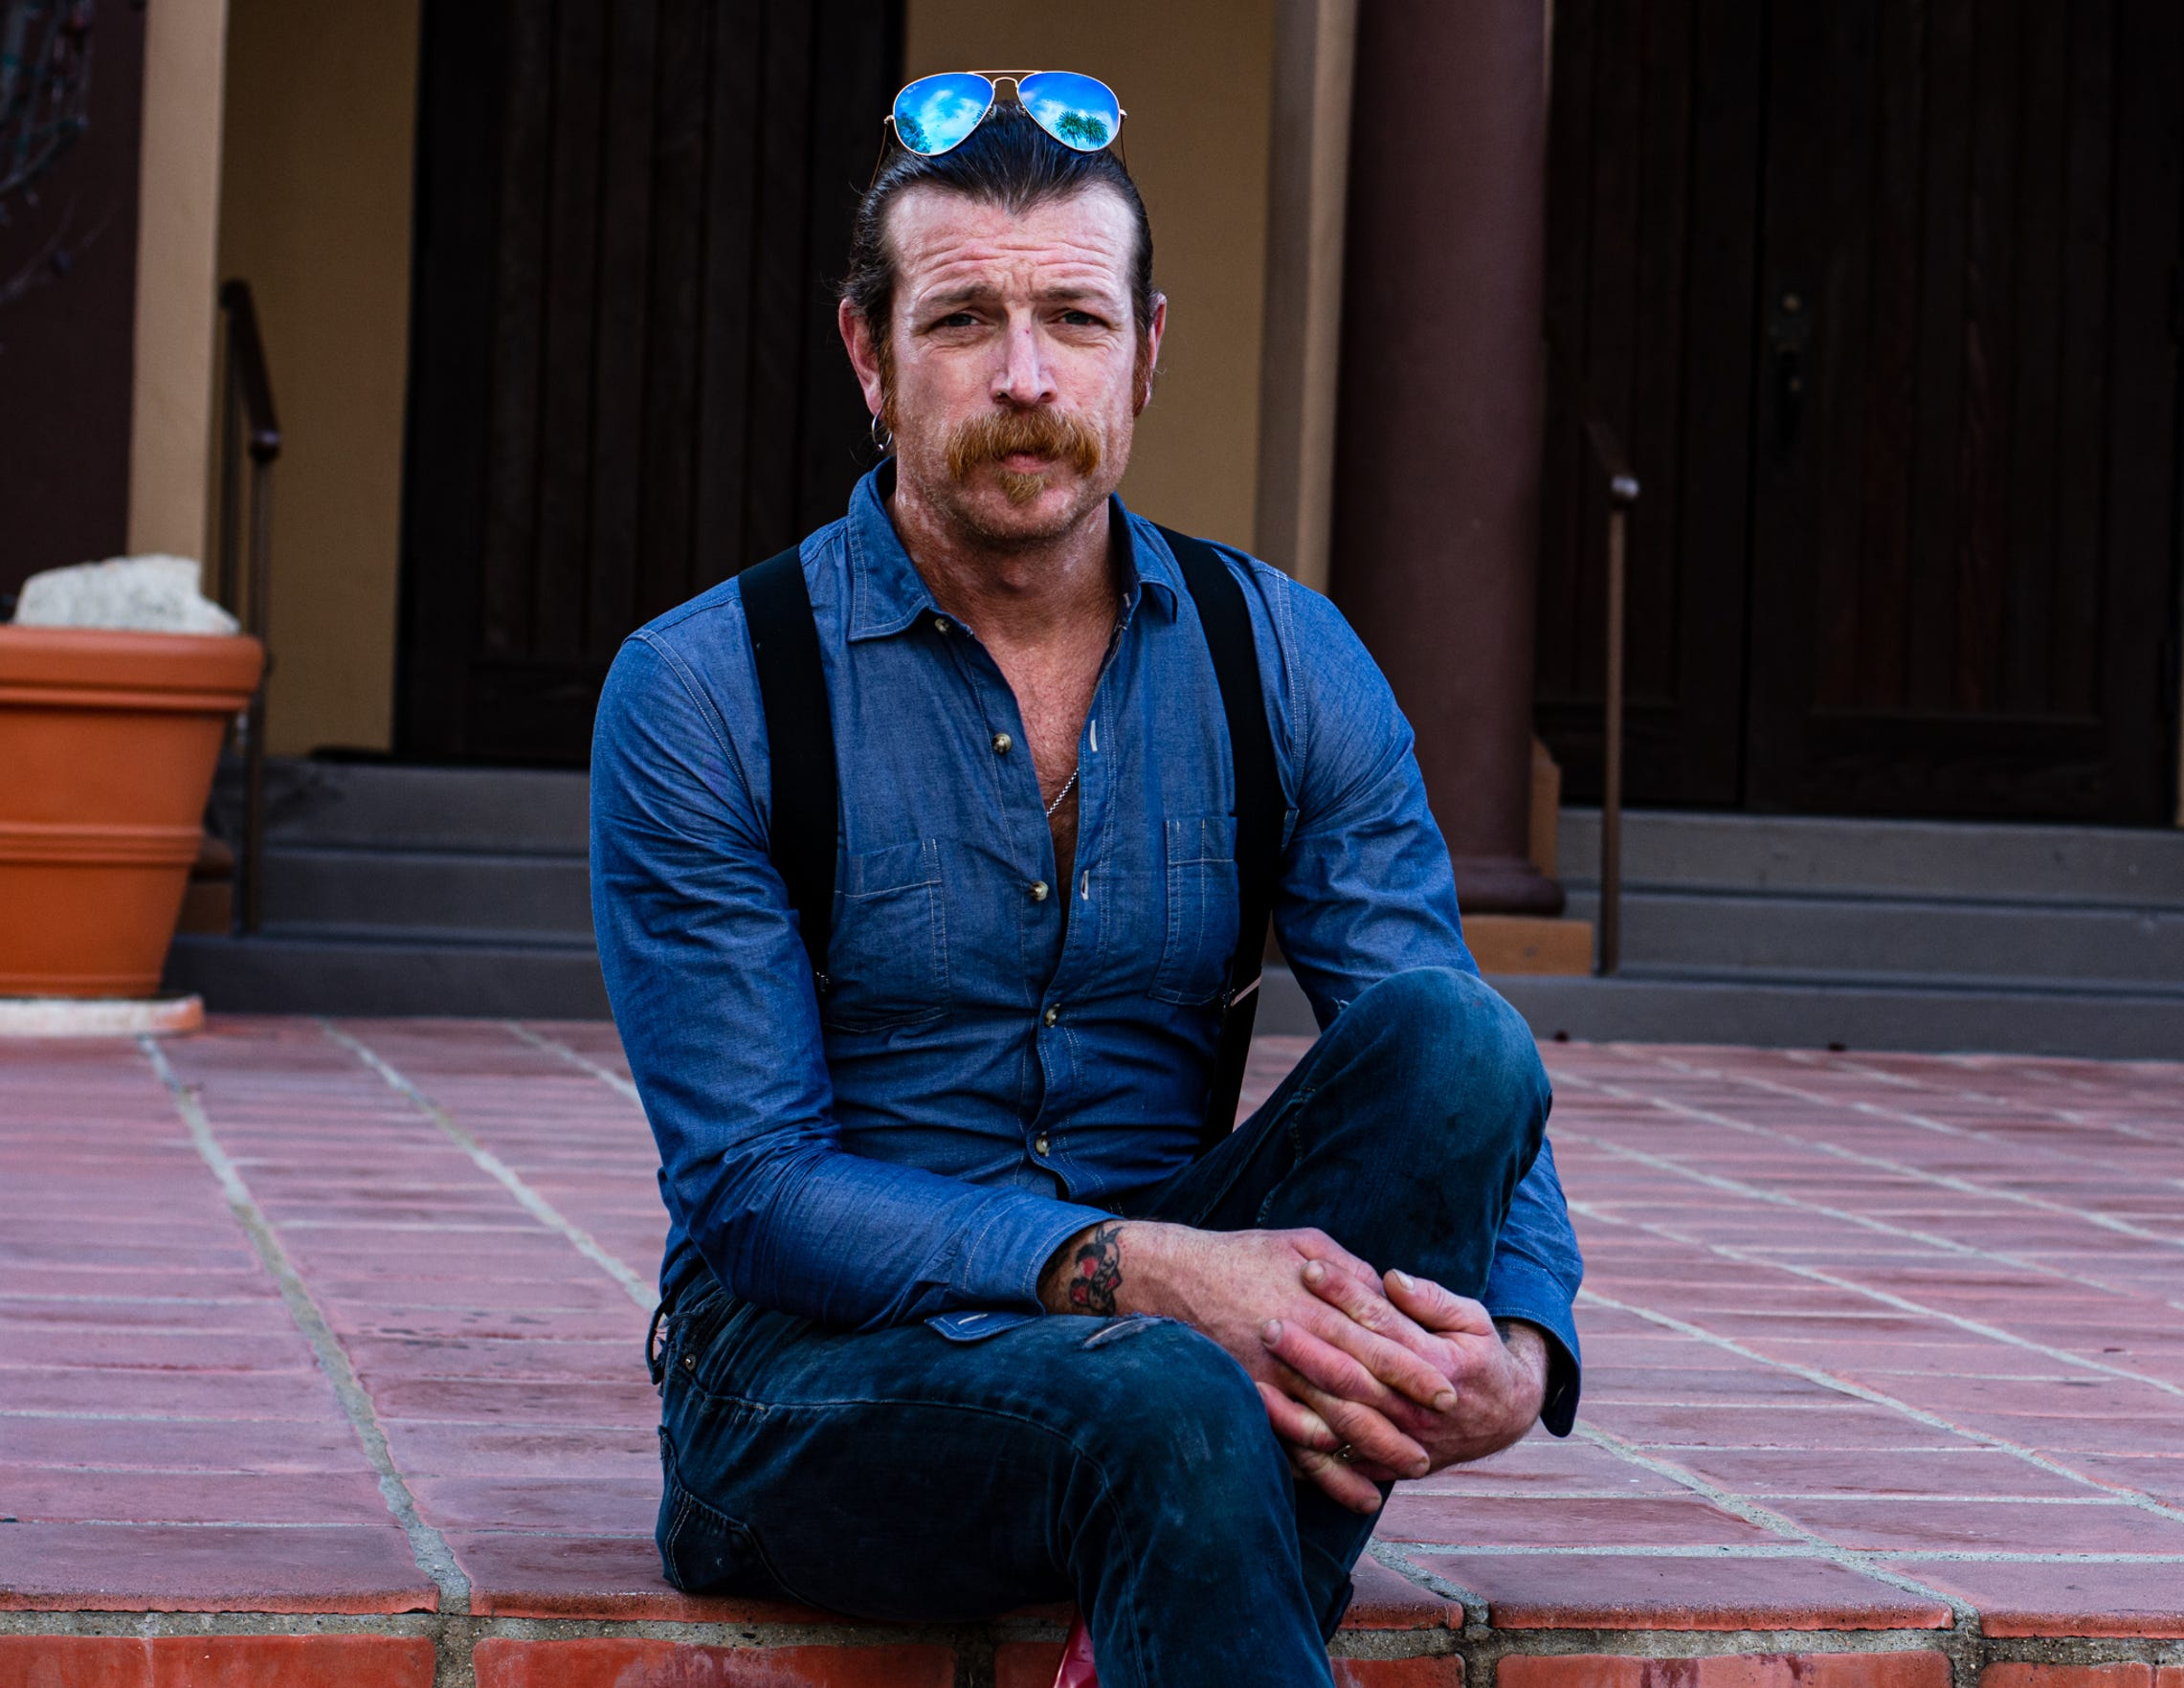 Jesse Hughes poses on the steps of the Holy Trinity Catholic Church in Los Angeles, Calif. on Dec. 19, 2019.